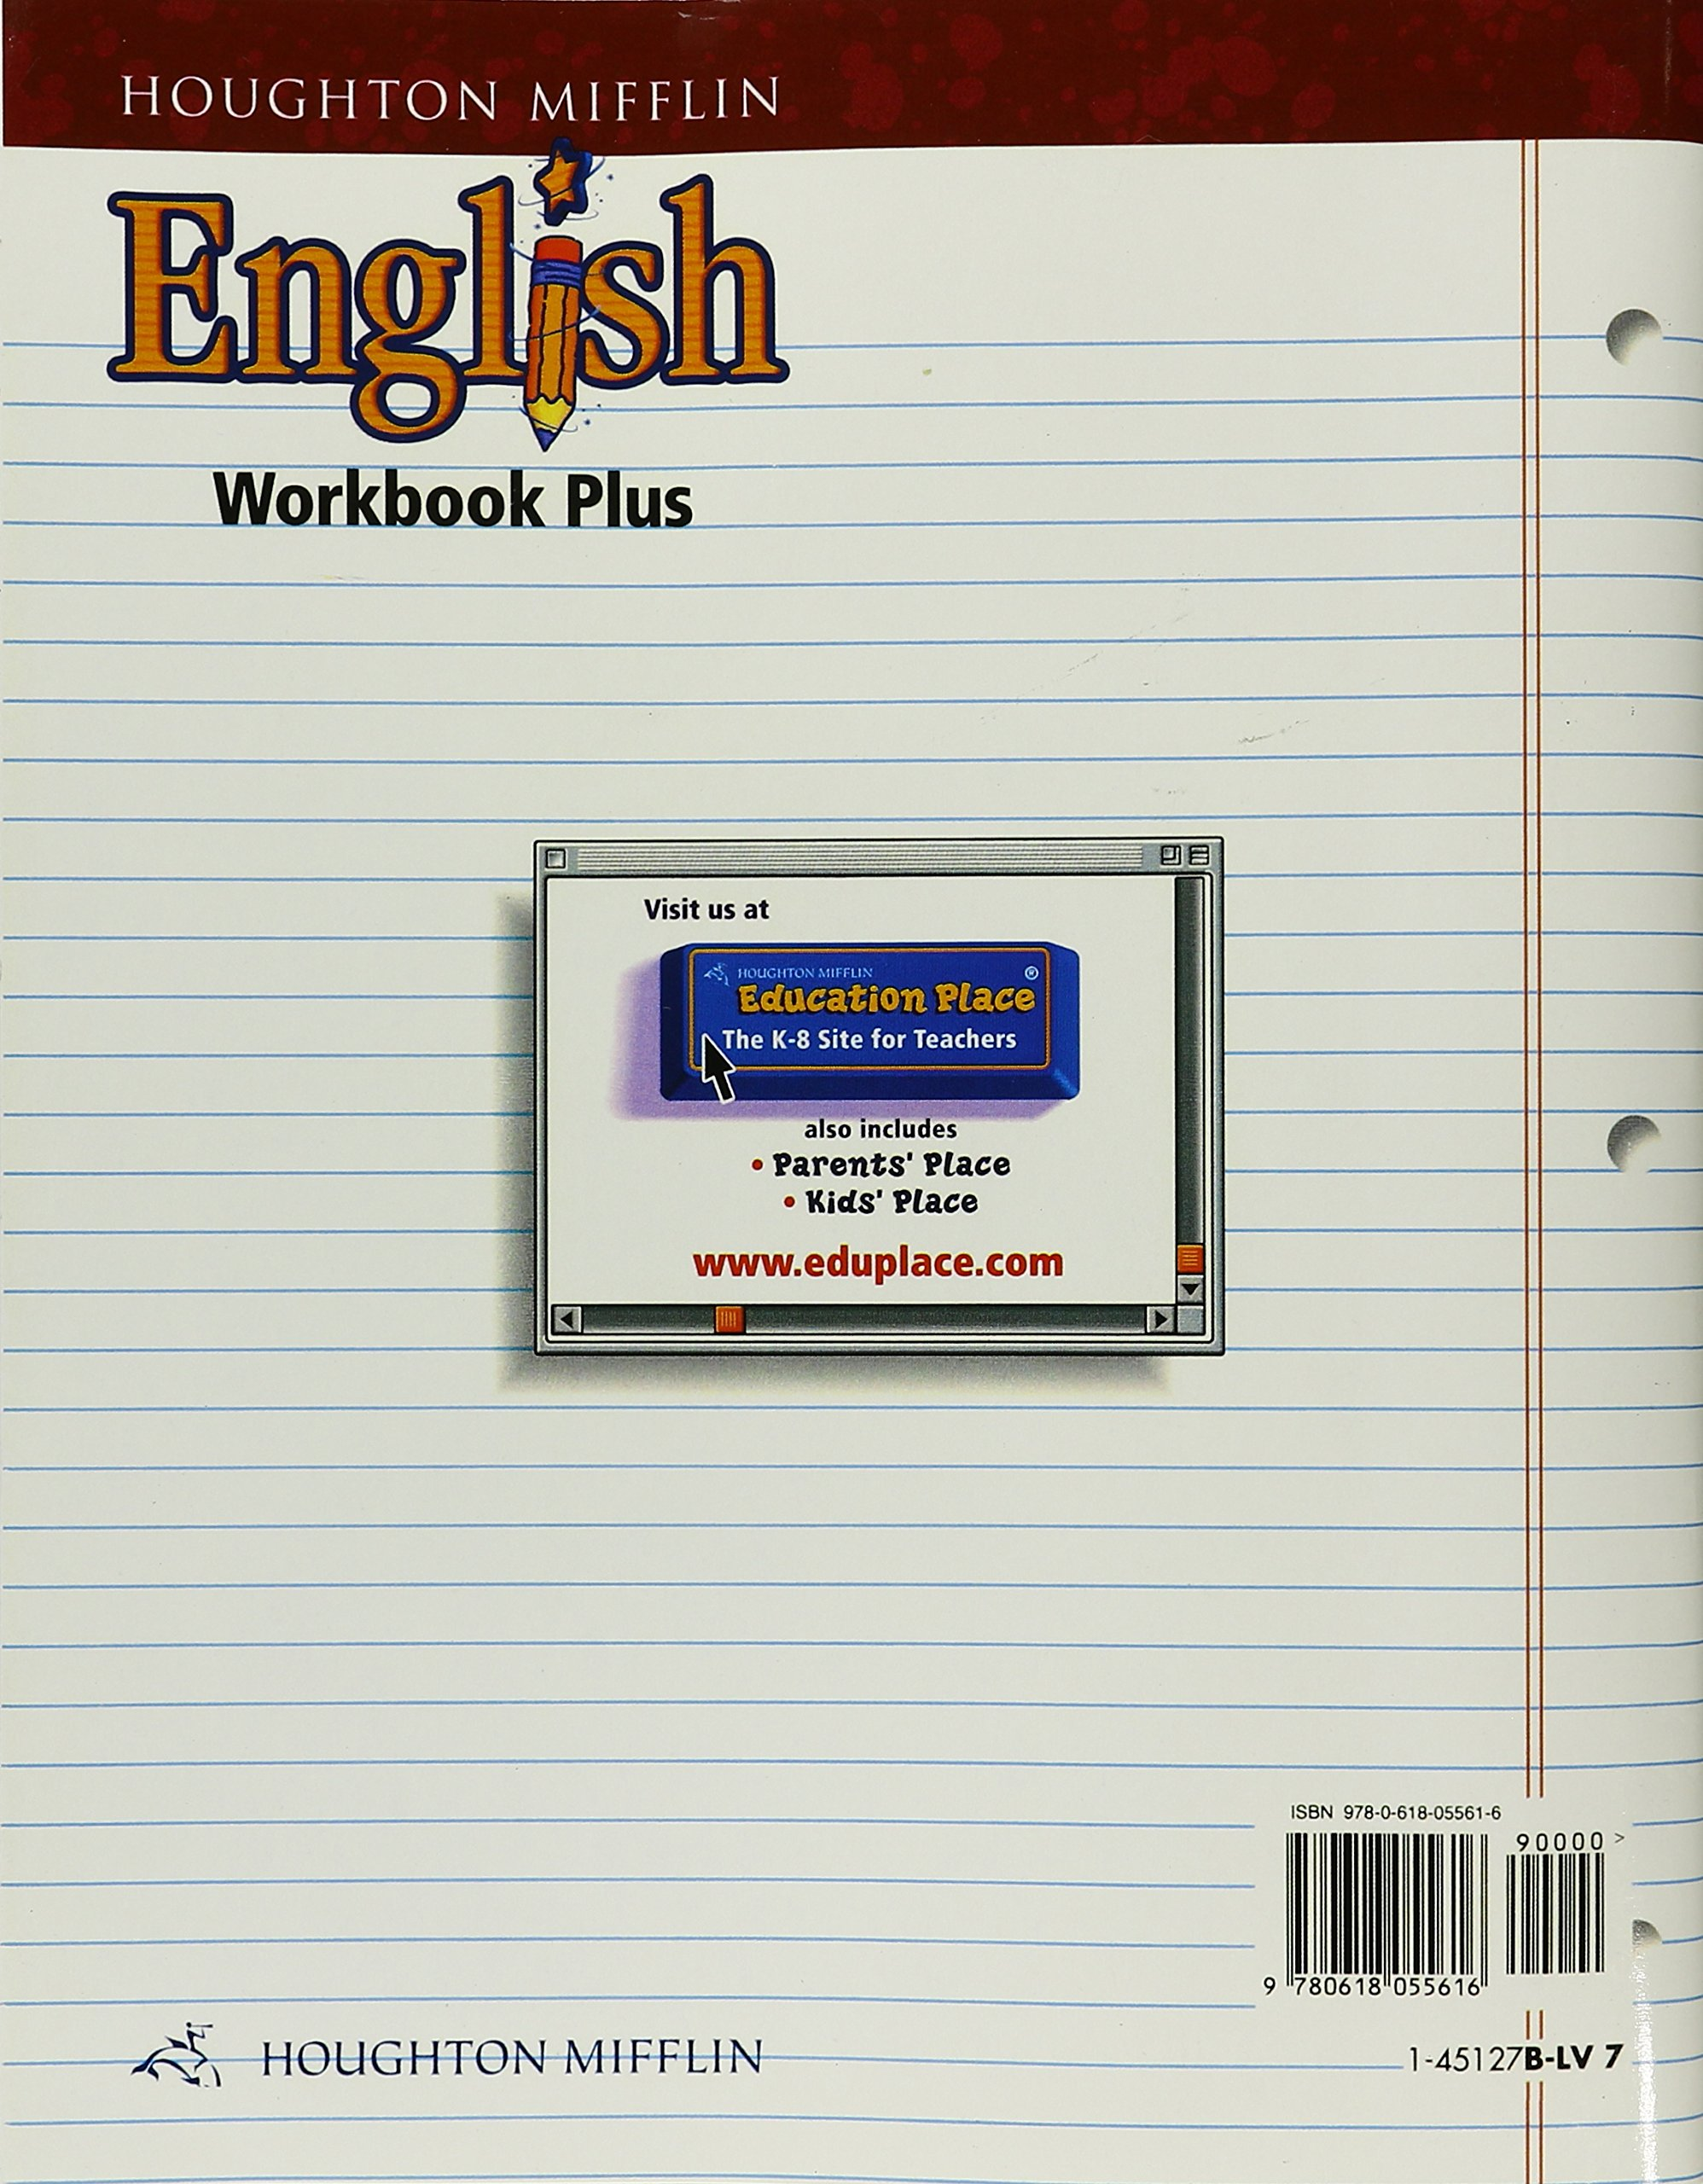 Fuji c2270 manual ebook array year 7 english workbook ebook rh year 7 english workbook ebook tempower us fandeluxe Gallery